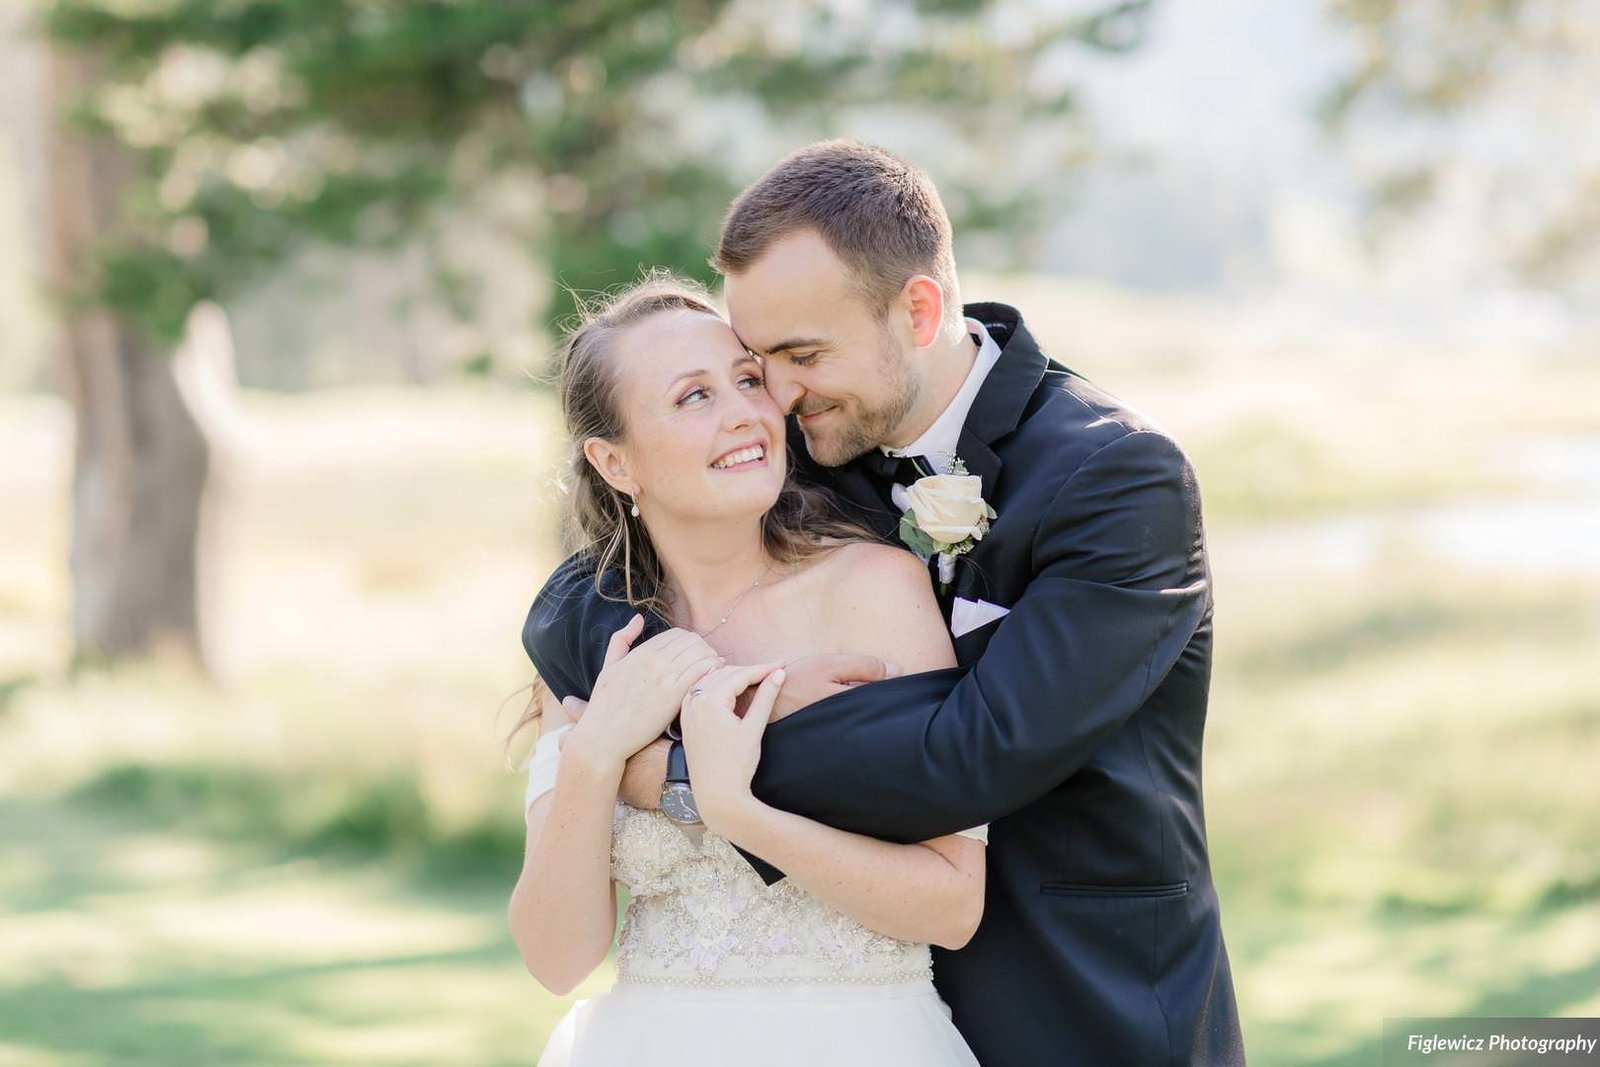 Garden_Tinsley_FiglewiczPhotography_LakeTahoeWeddingSquawValleyCreekTaylorBrendan00115_big